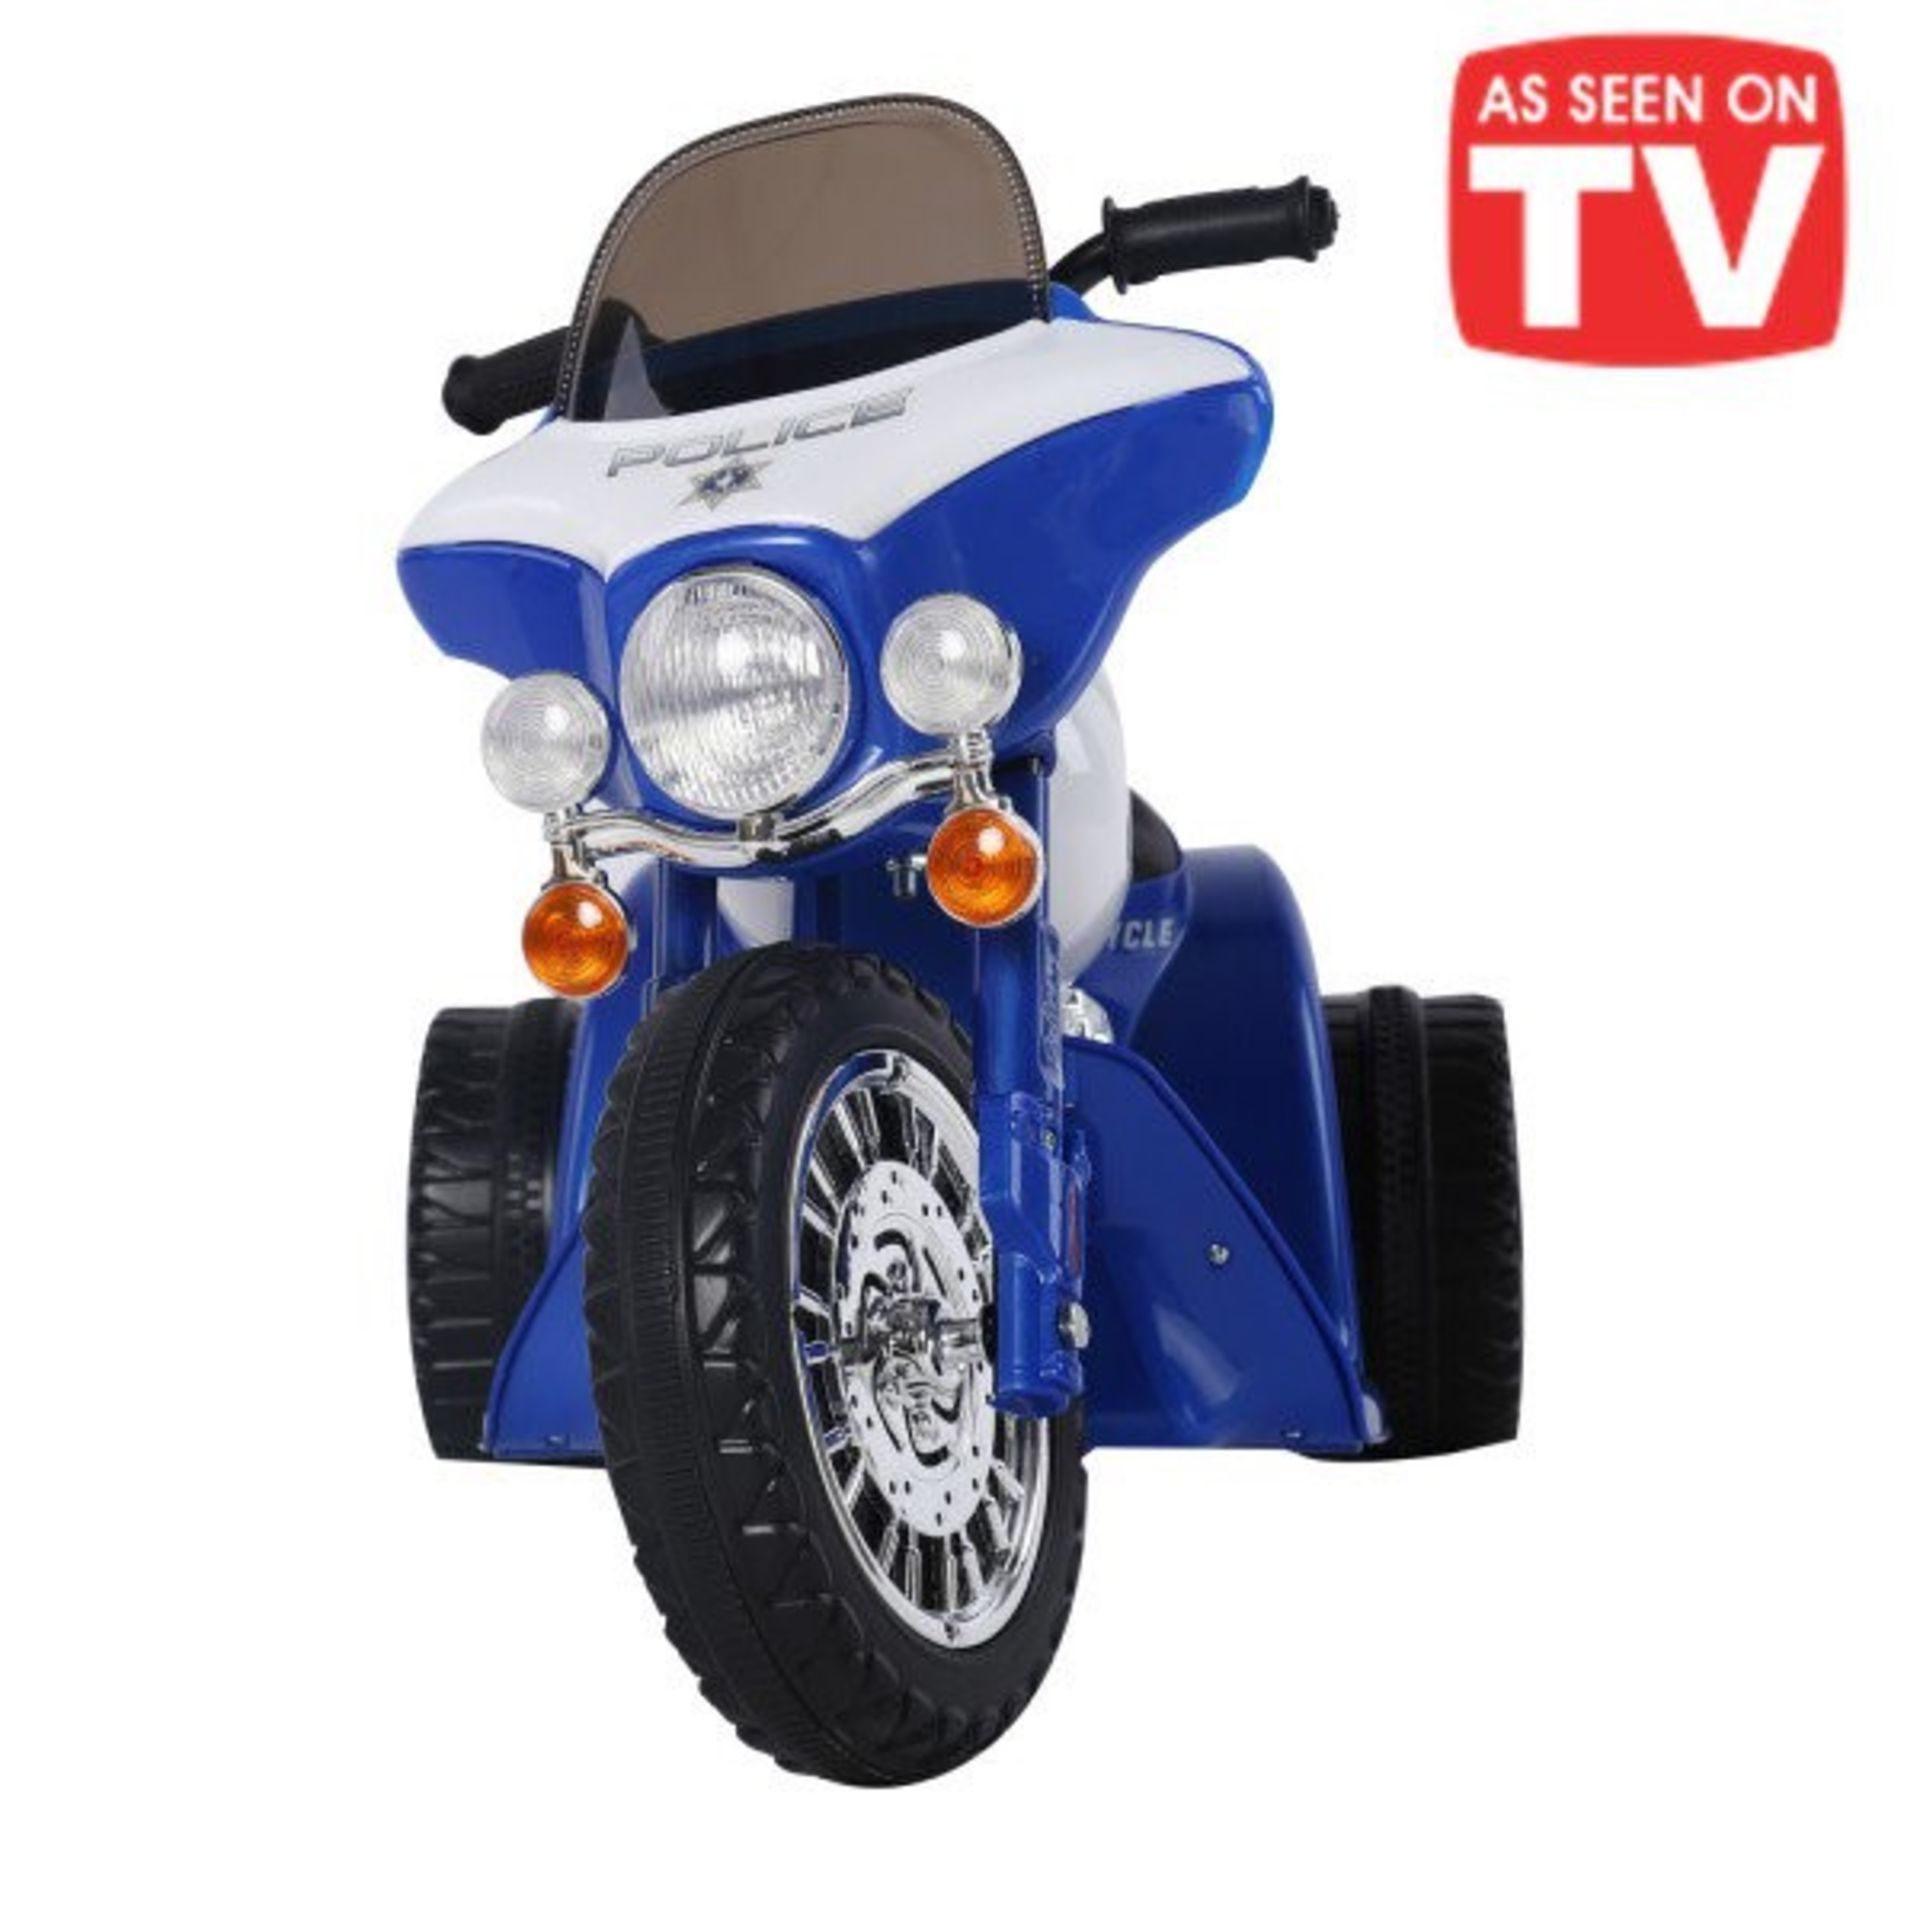 Lot 22 - 1 AS NEW BOXED CHILDRENS POLICE ELECTRIC RIDE ON TRICYCLE IN BLUE AND WHITE RRP £149.99